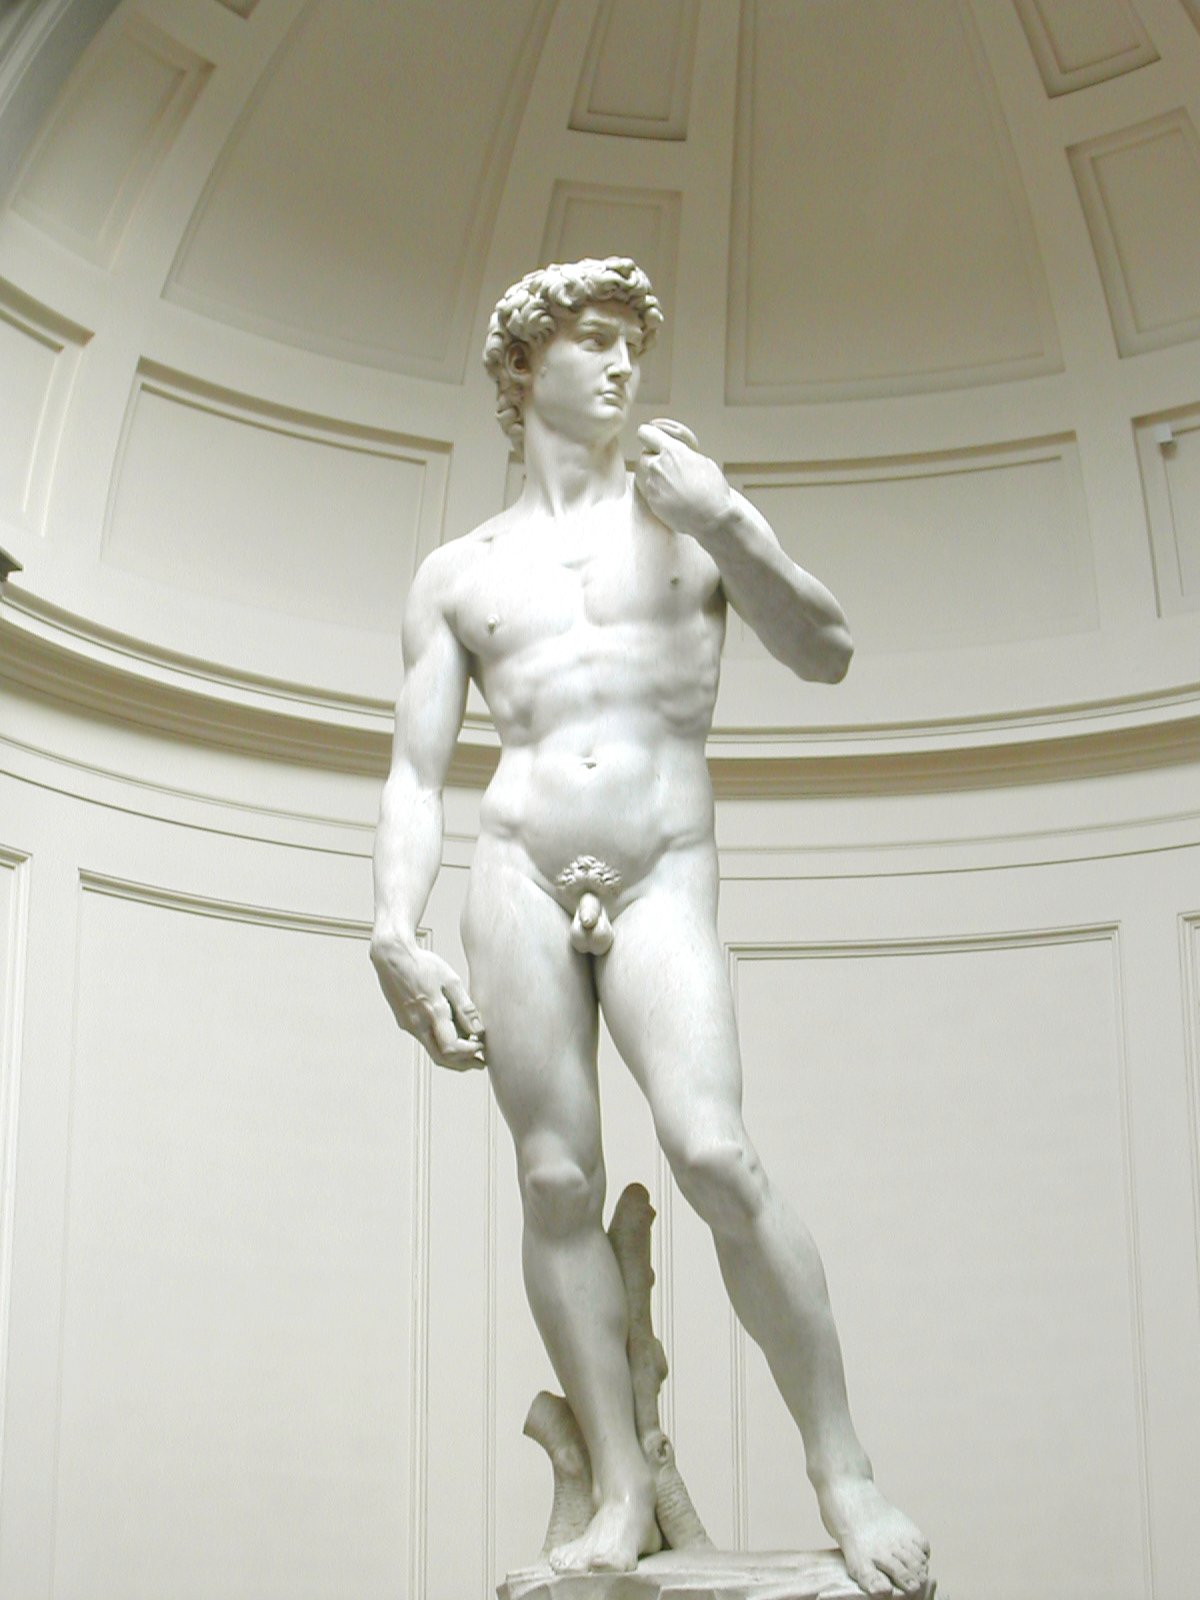 http://upload.wikimedia.org/wikipedia/commons/6/63/Michelangelos_David.jpg